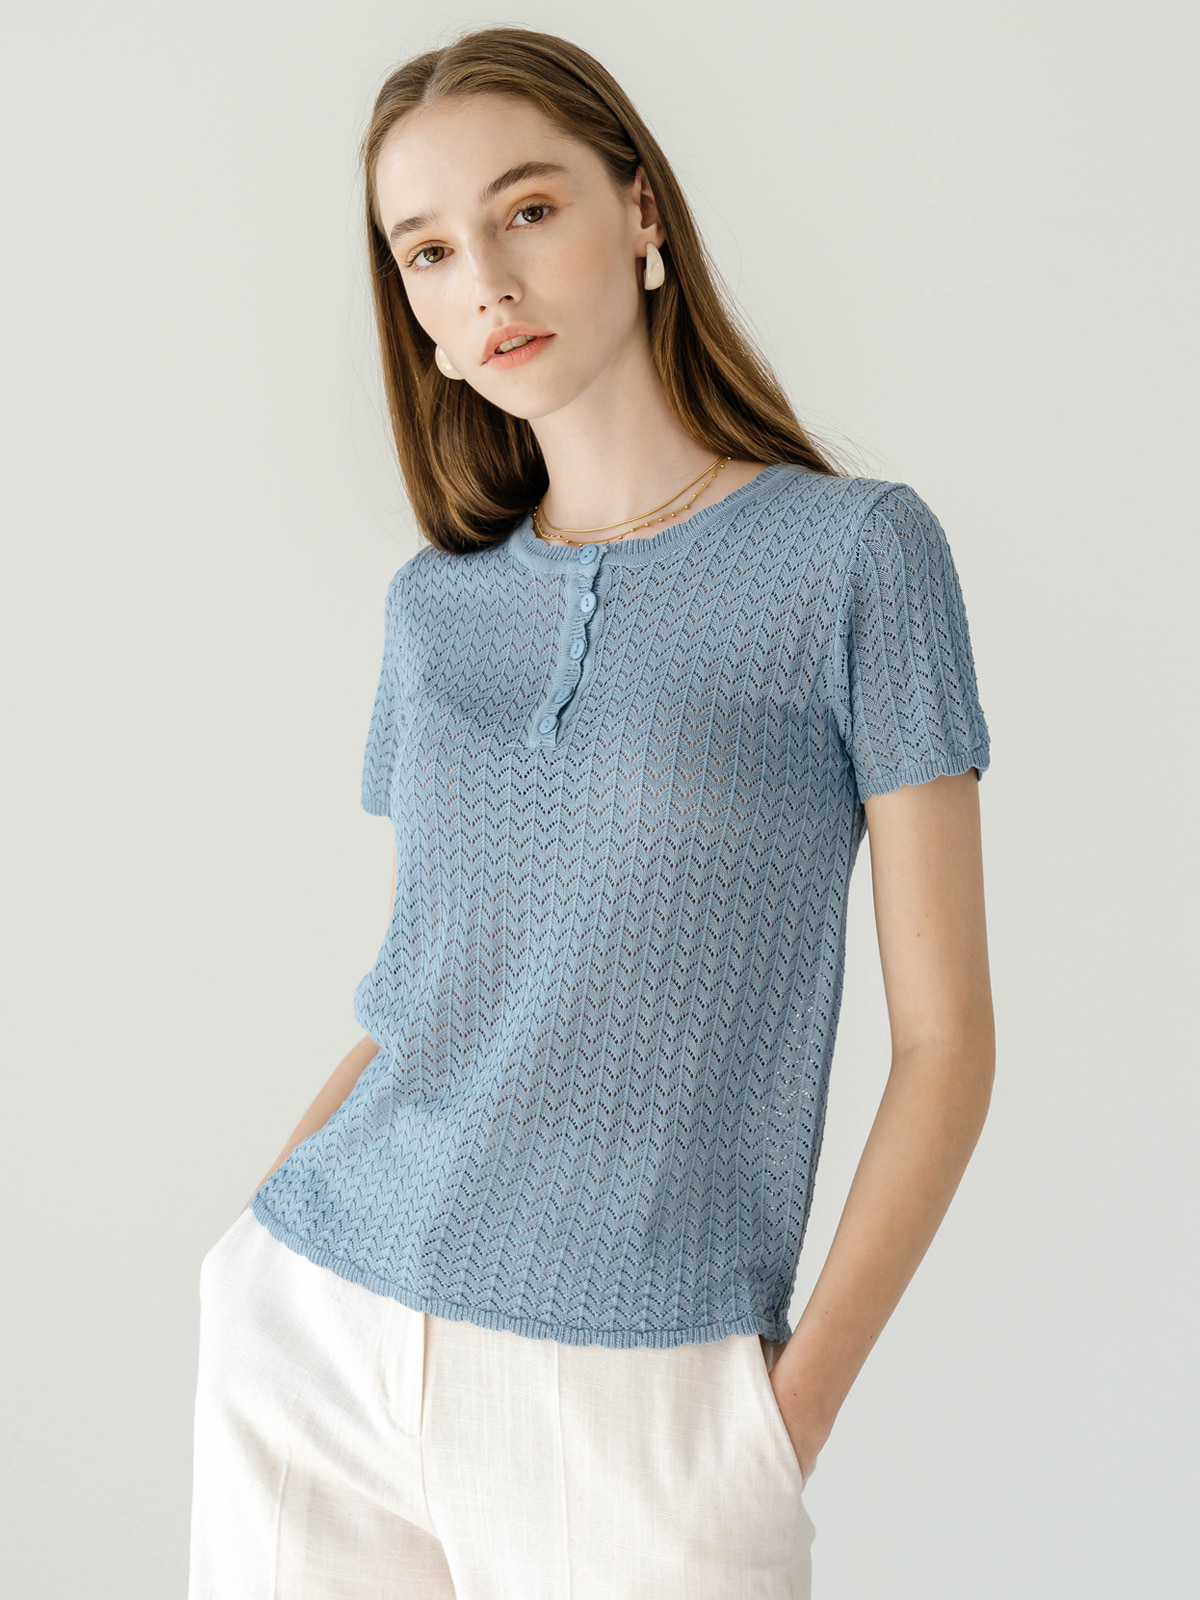 Mollie Half Sleeve Knit Top_Sky